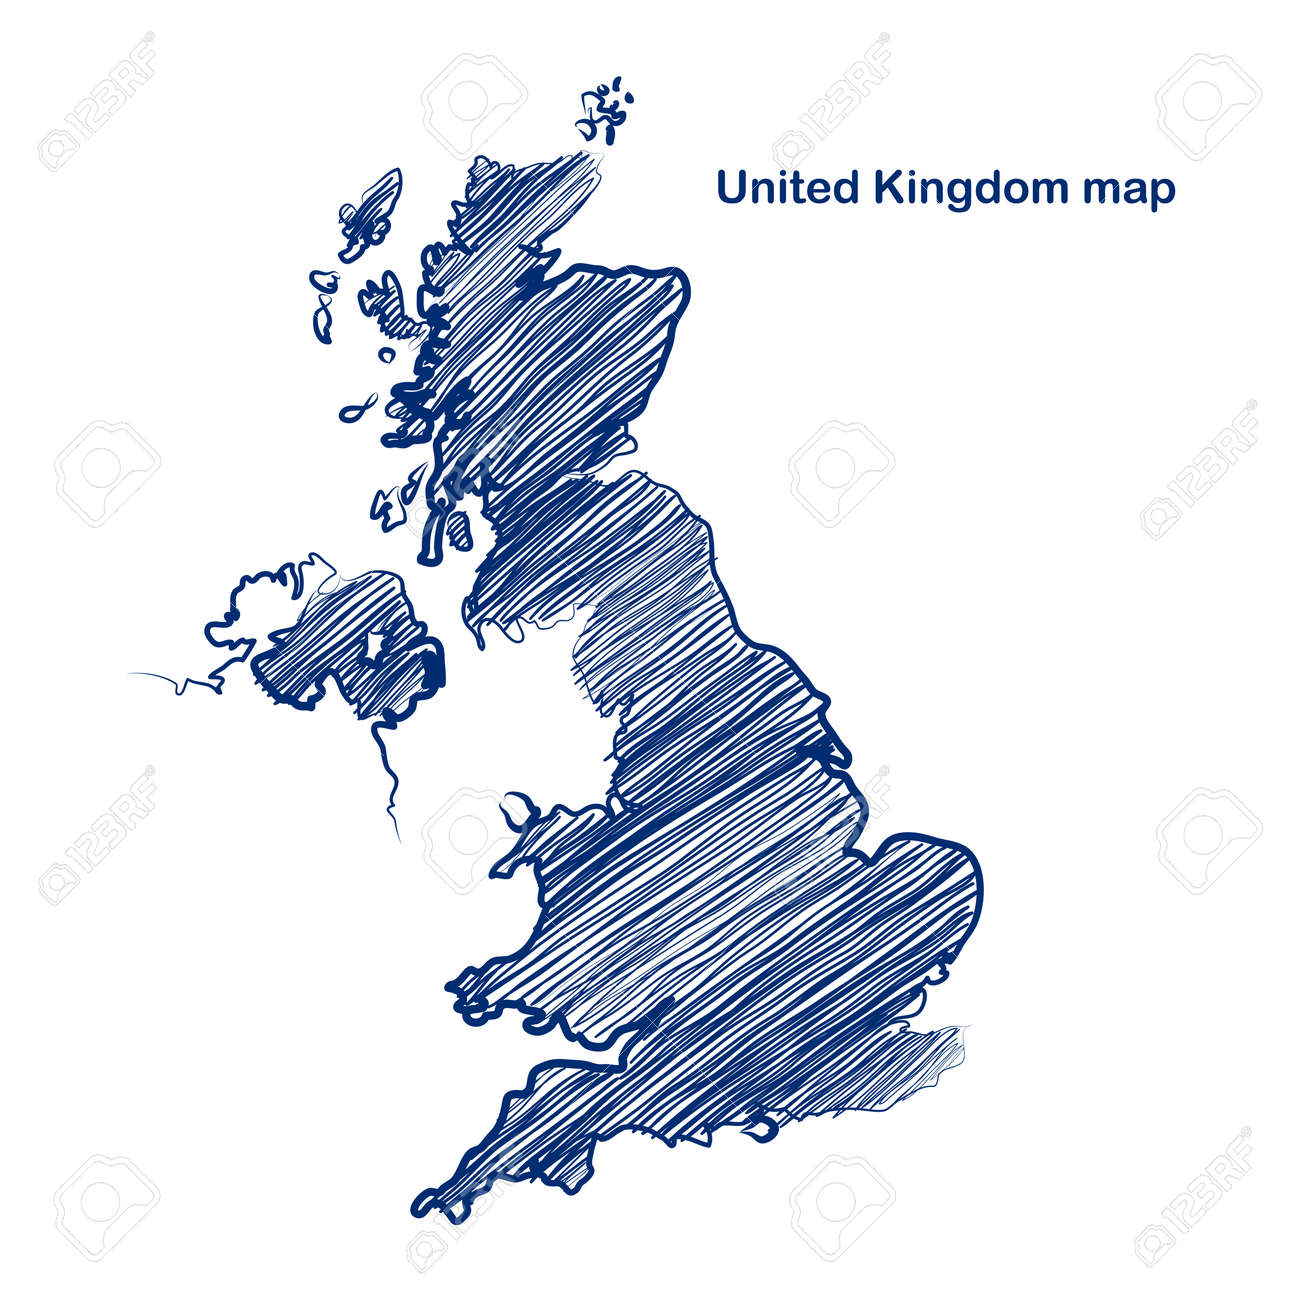 united kingdom map hand drawn background royalty free cliparts